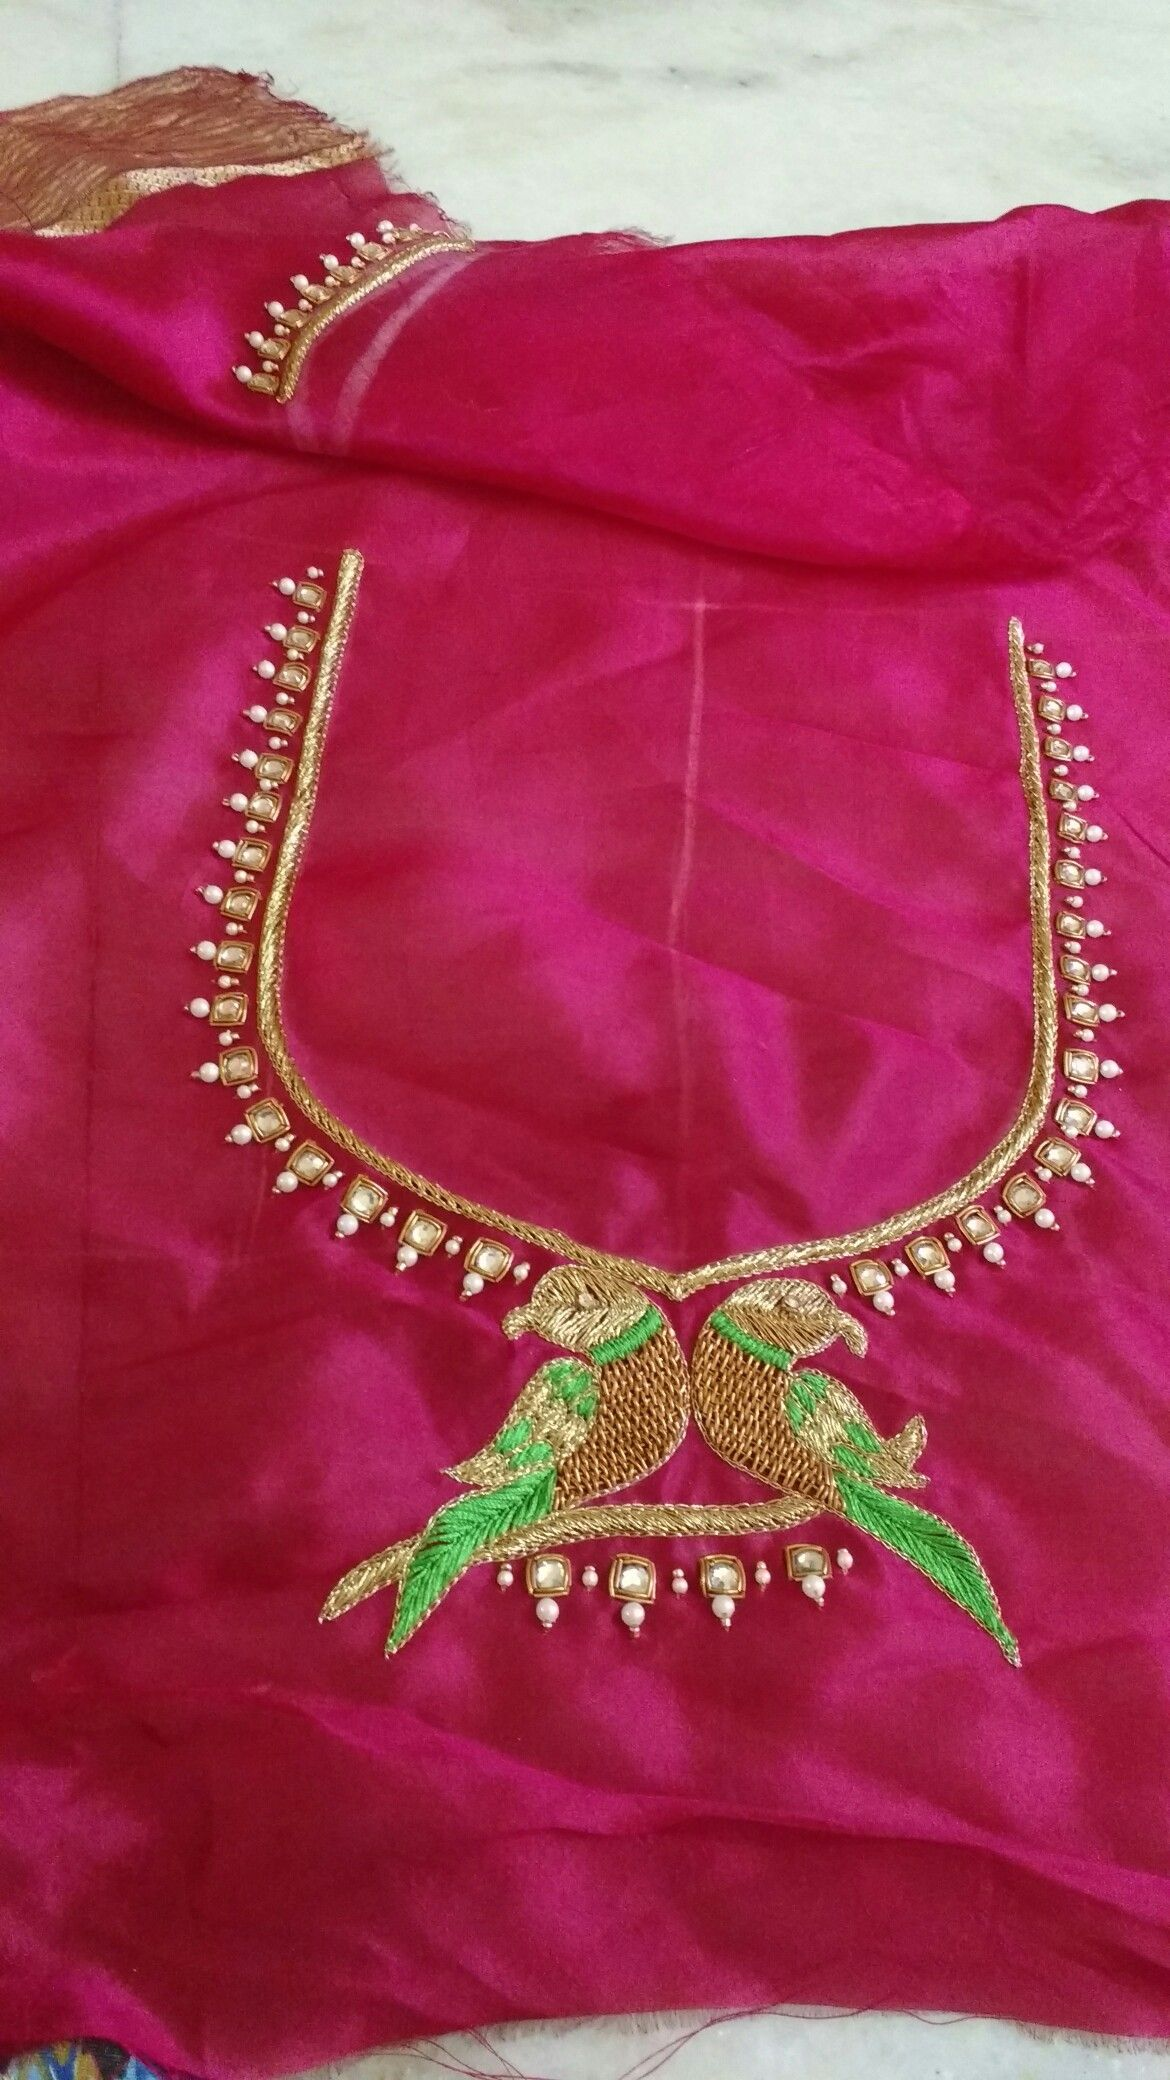 Maggam design blouse pinterest blouse designs embroidery and